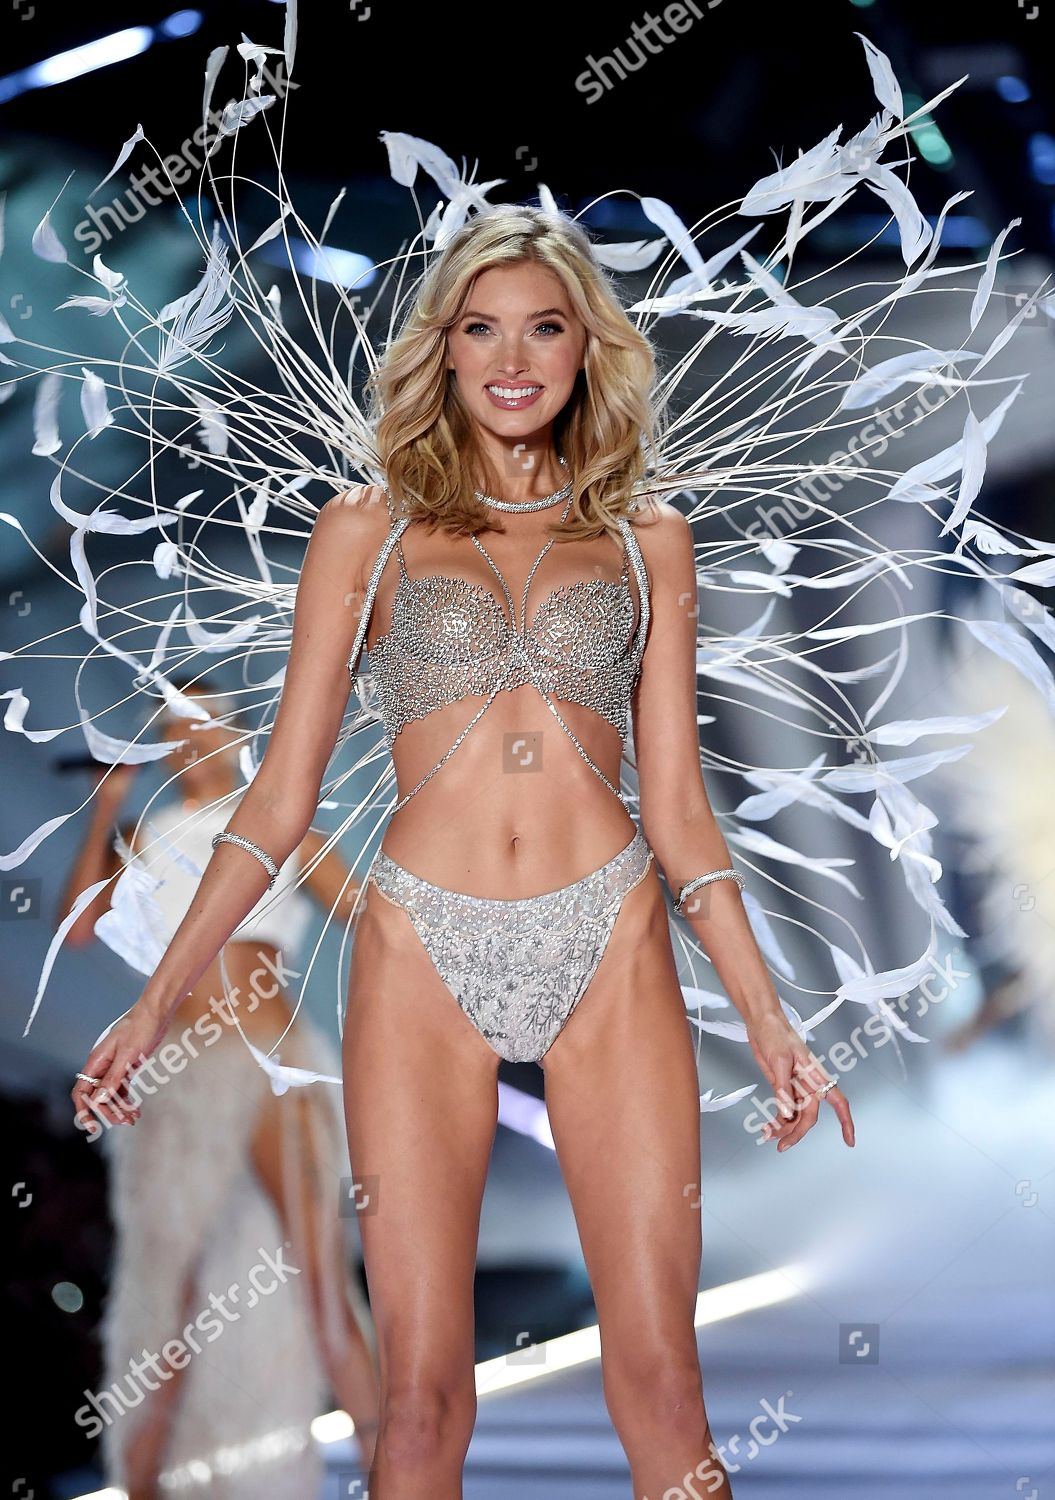 72fabe0c55 Elsa Hosk wears 1 million fantasy bra Editorial Stock Photo - Stock ...